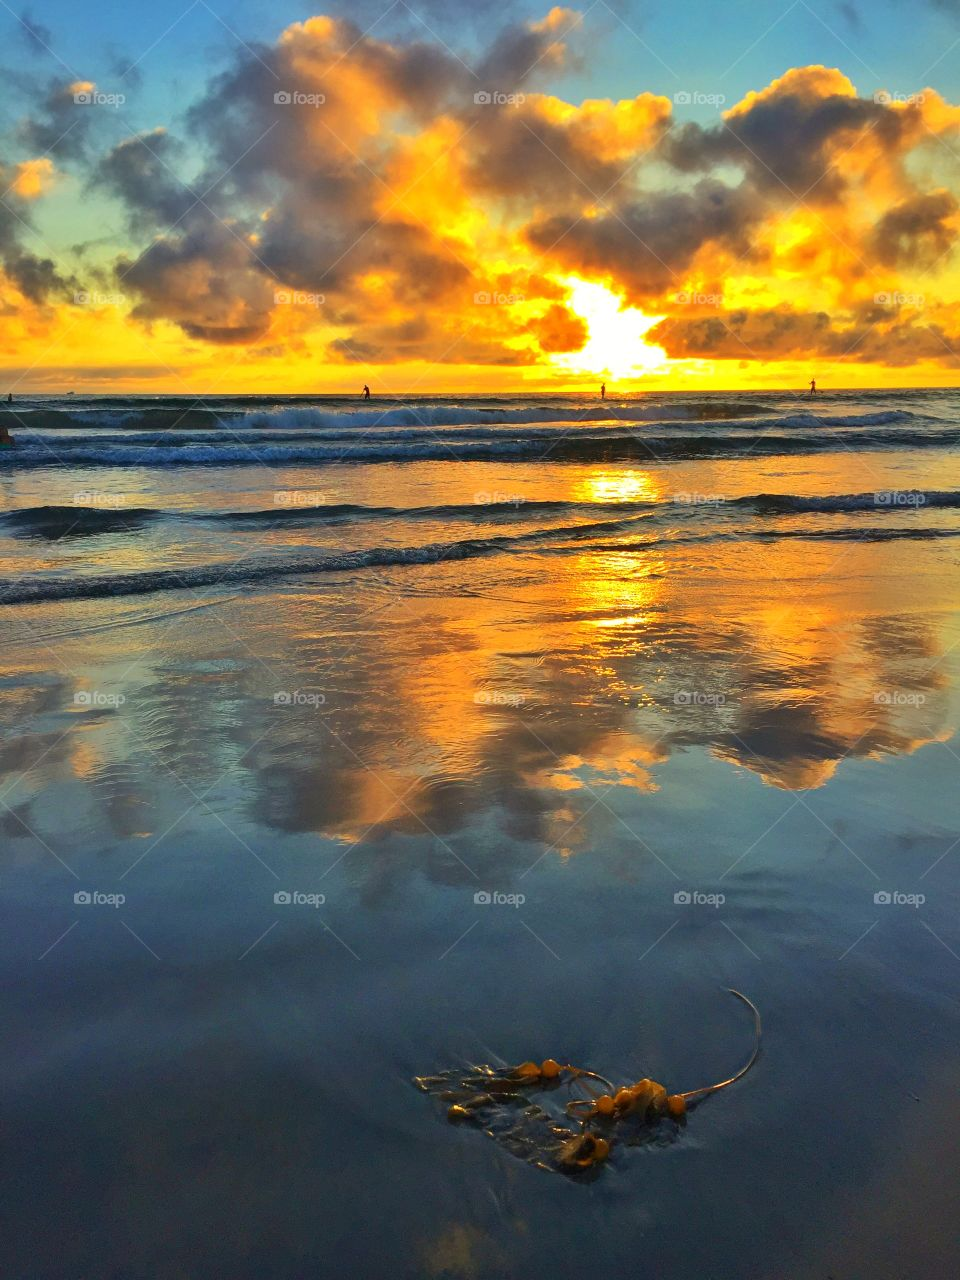 Mission Beach Sunset. Sunset over the Pacific Ocean of Mission Beach in San Diego, California